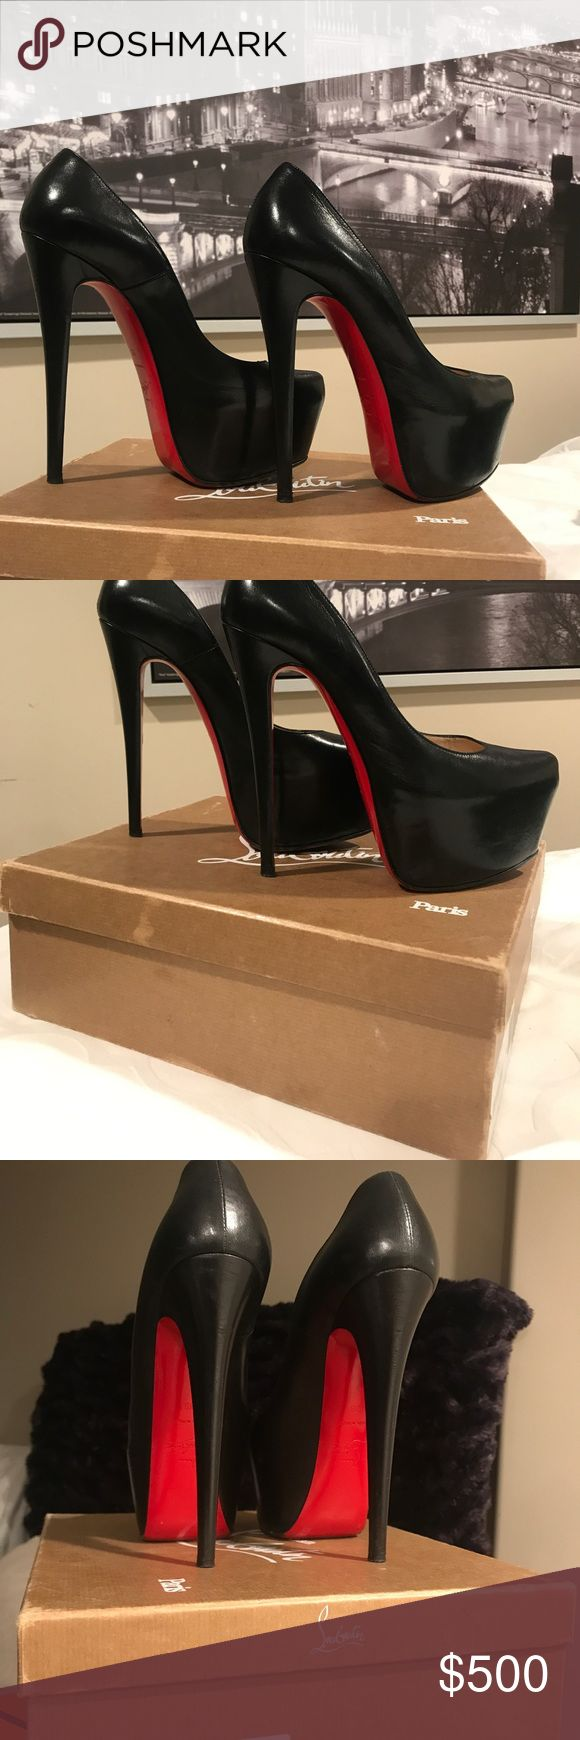 louboutin book bag french designer shoes with red soles christian louboutin